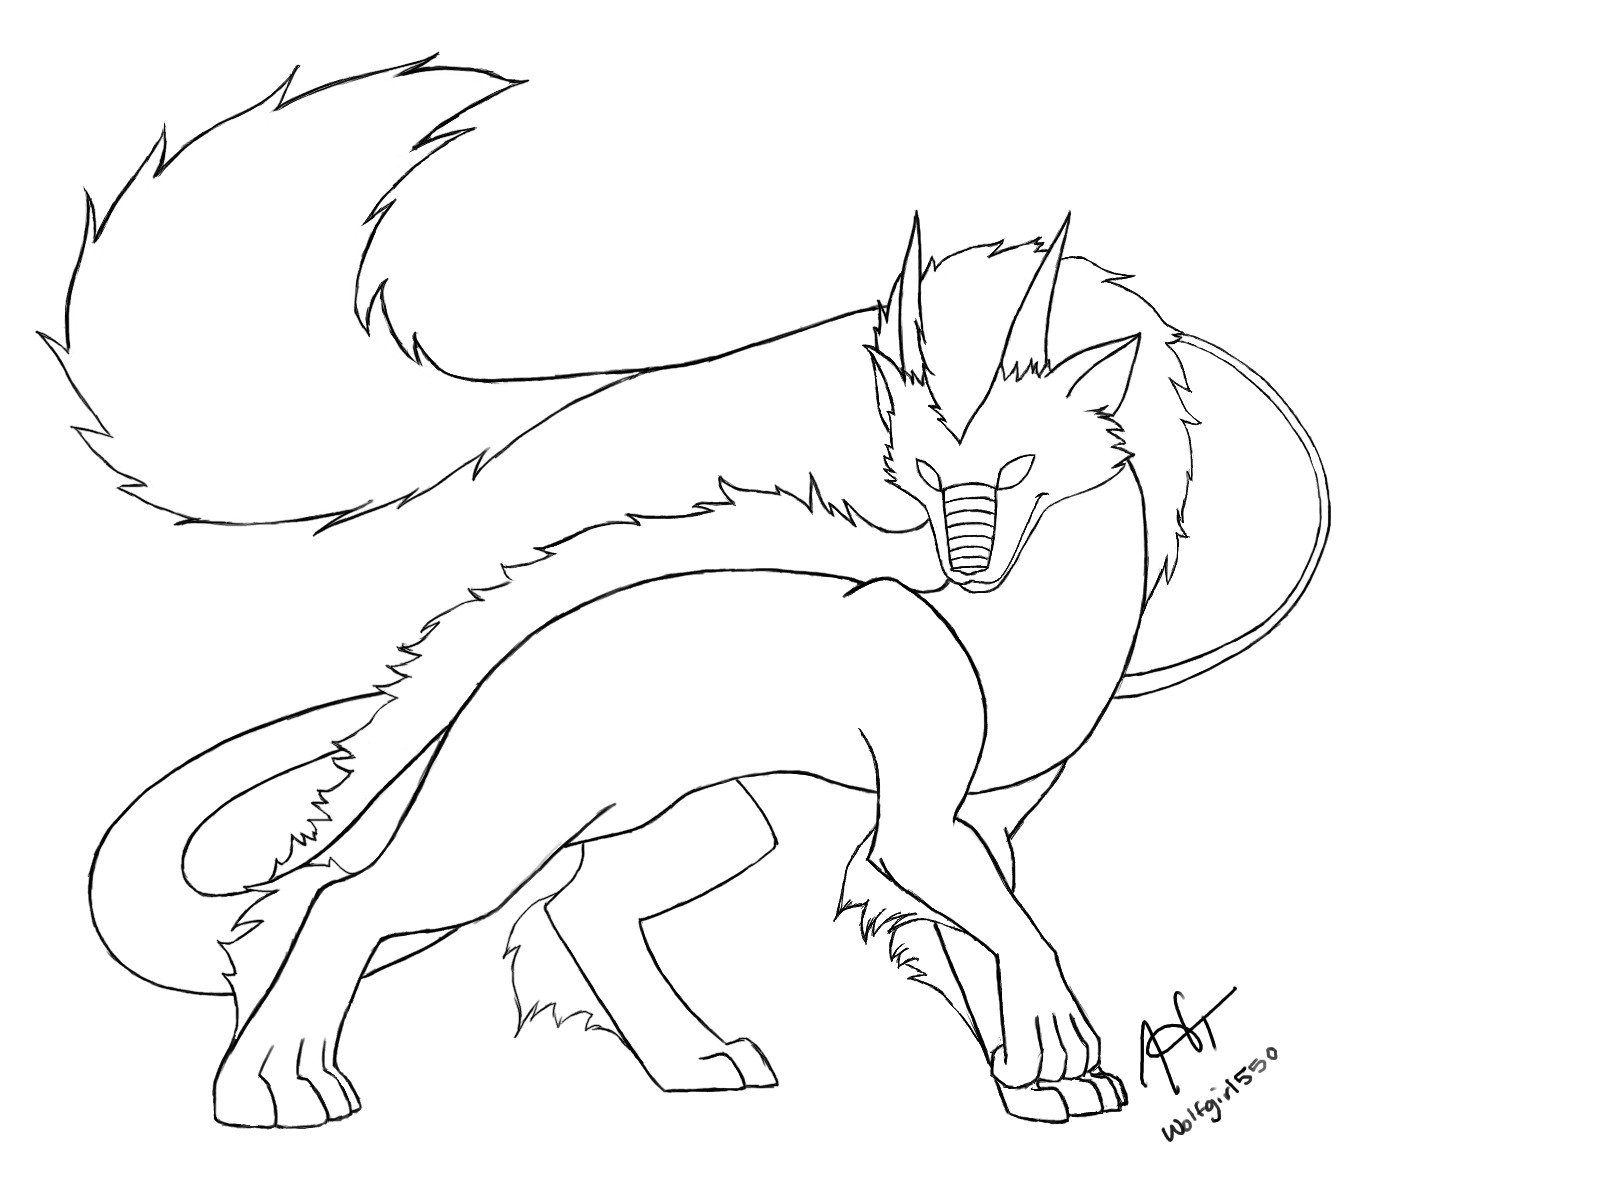 Simple Dragon Line Art : Wolf dragon line art thingy by wolfgirl on deviantart